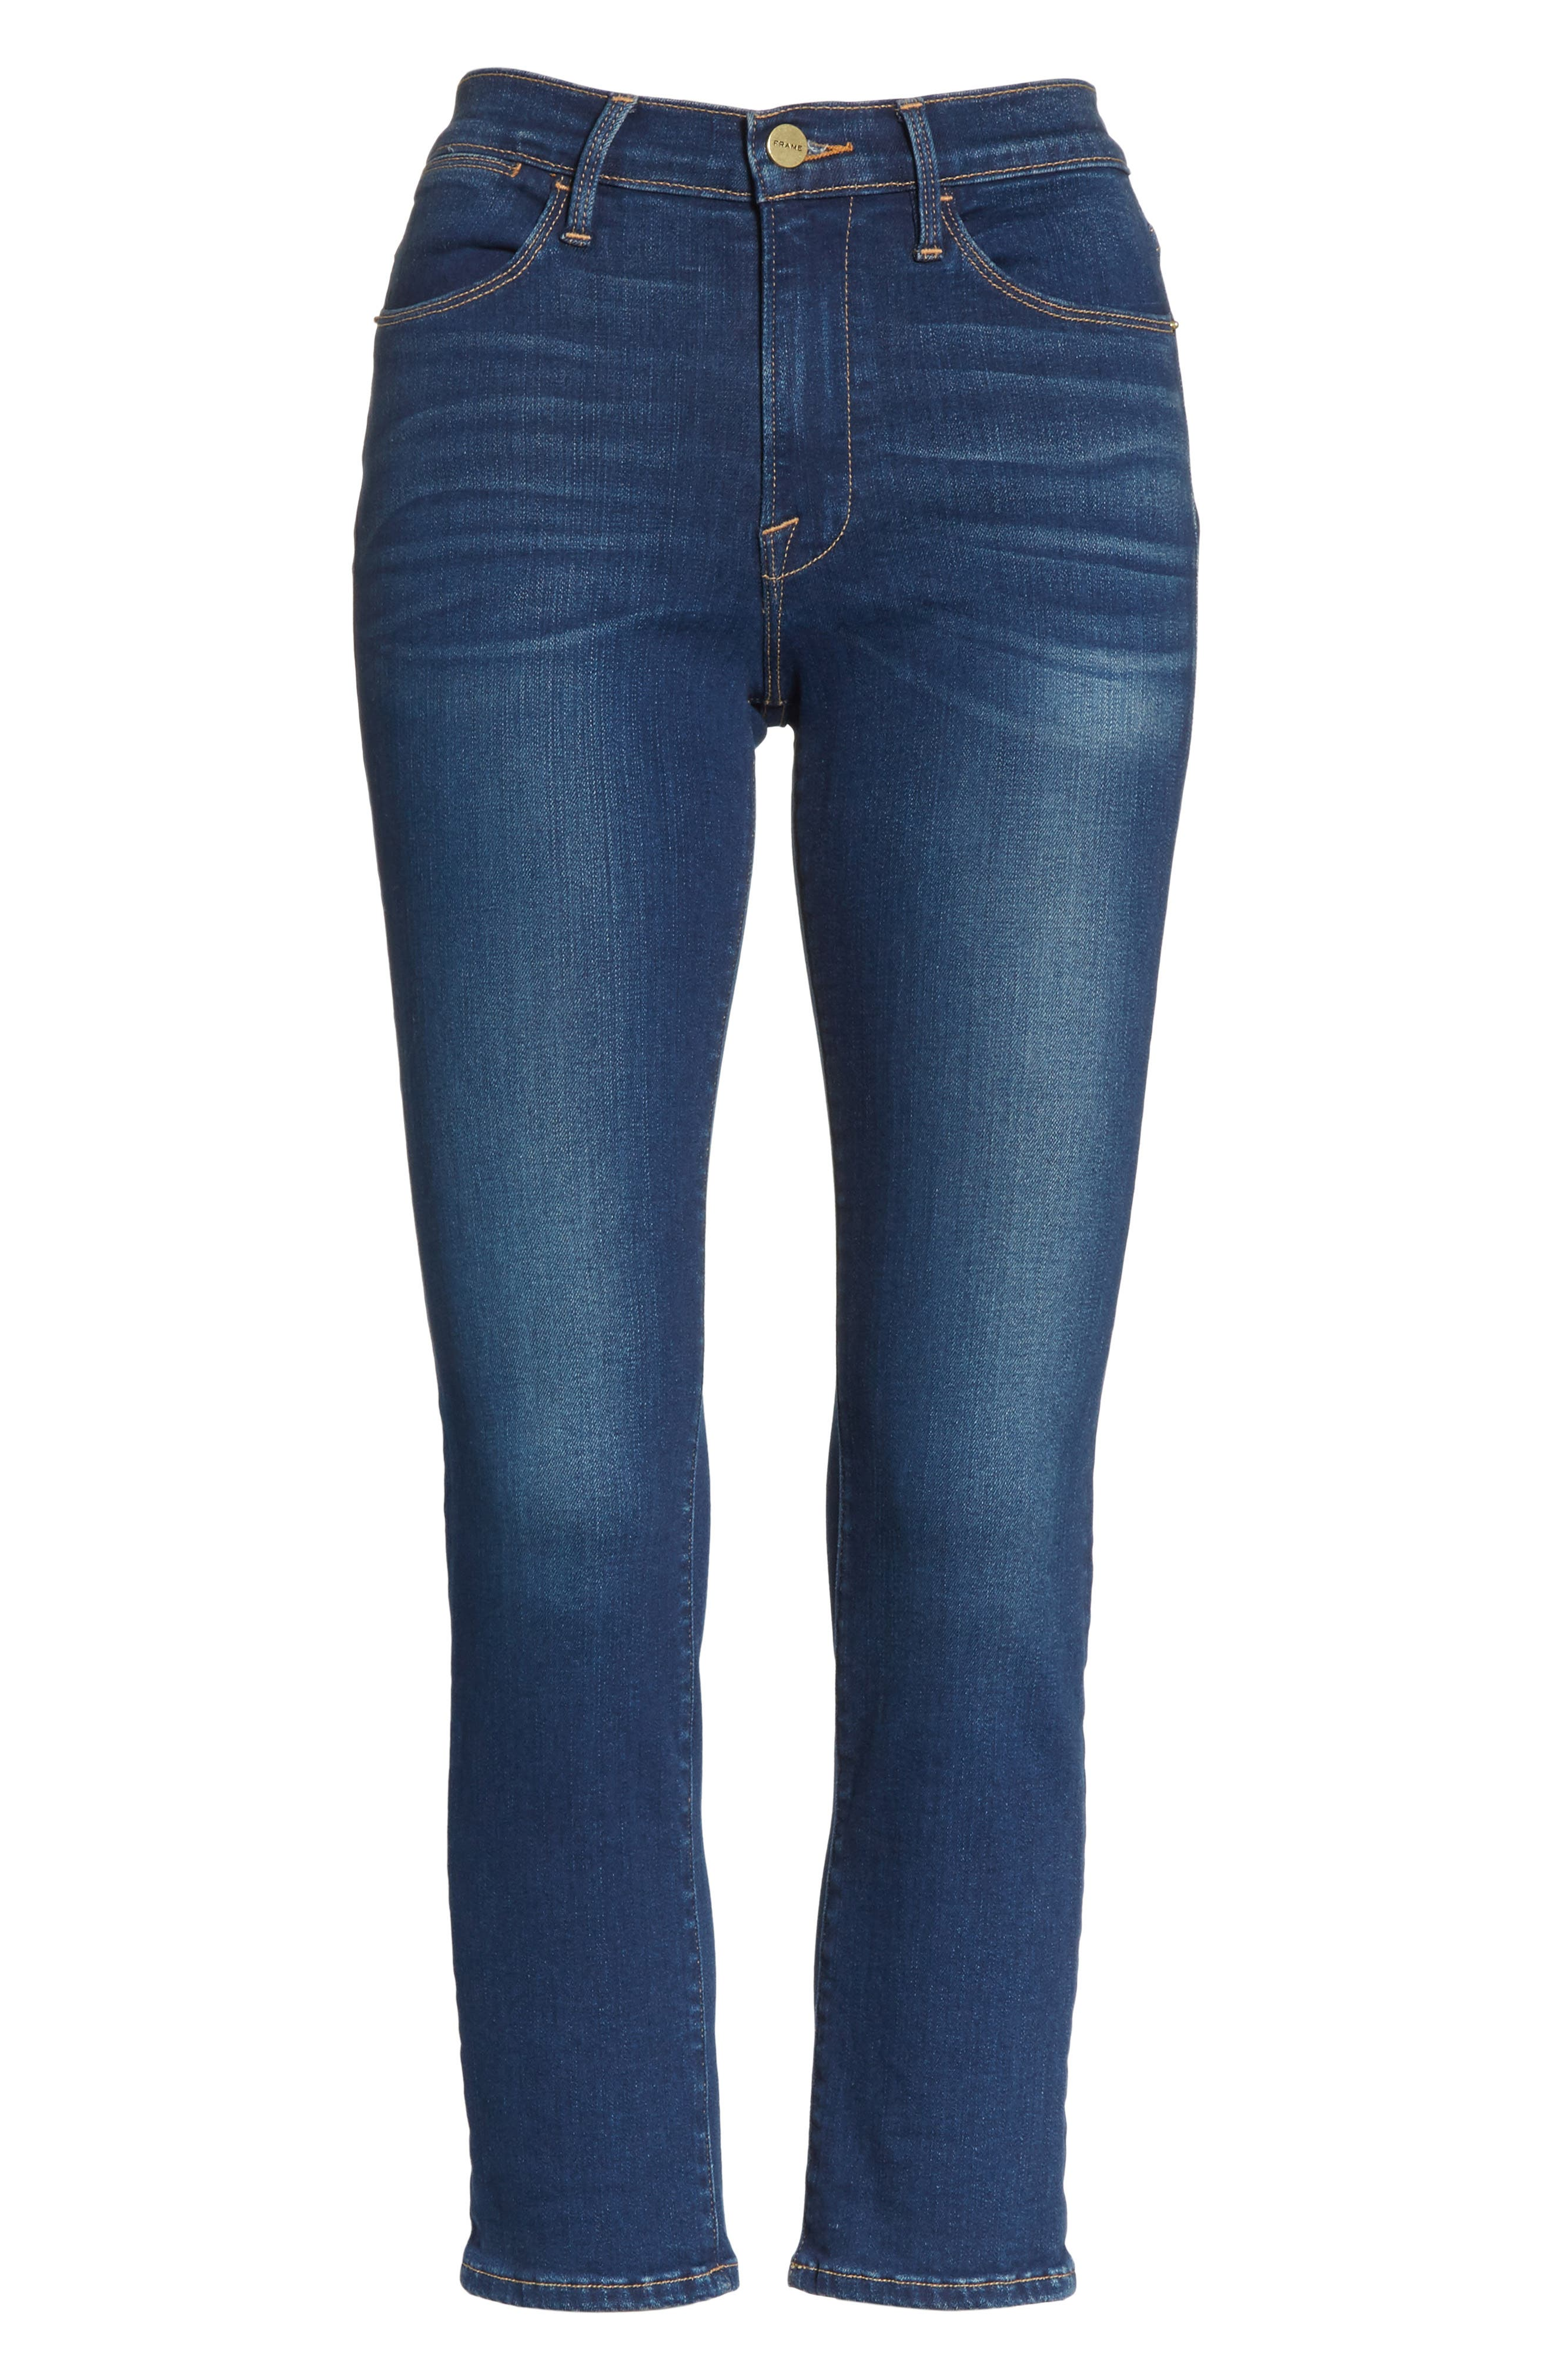 Le High Skinny Ankle Jeans,                             Alternate thumbnail 6, color,